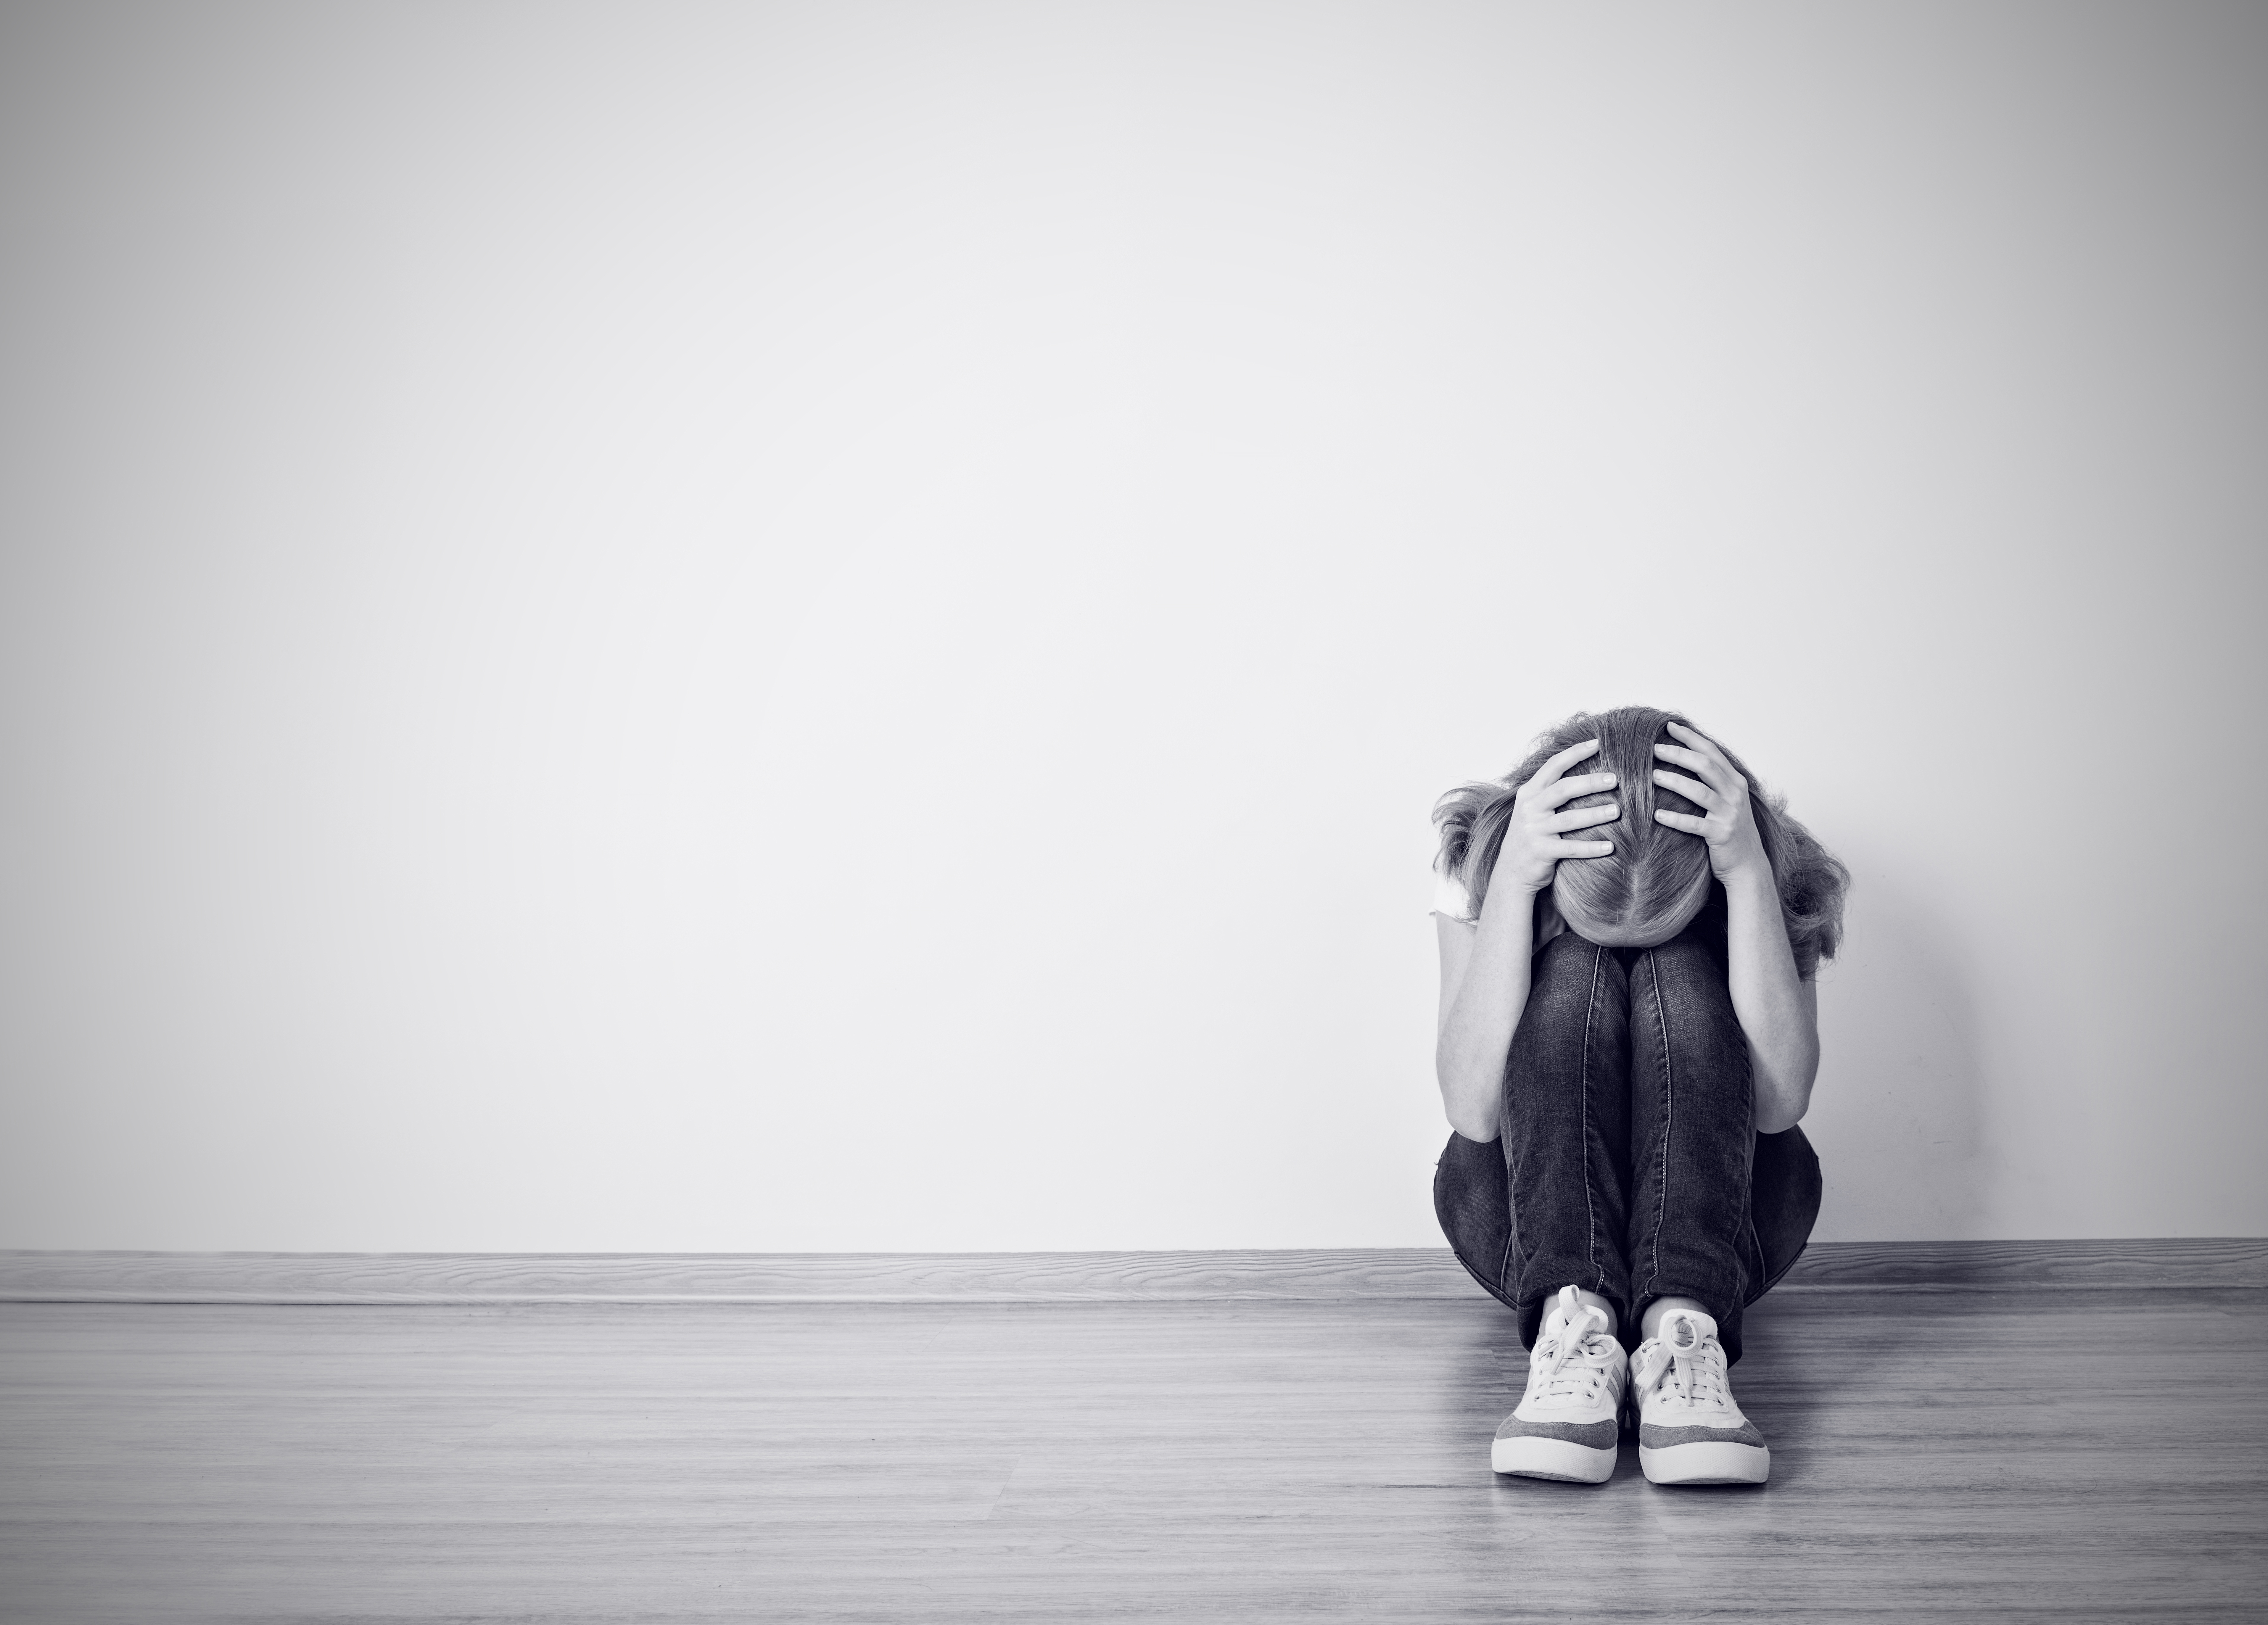 Many mental illnesses reduce life expectancy more than heavy